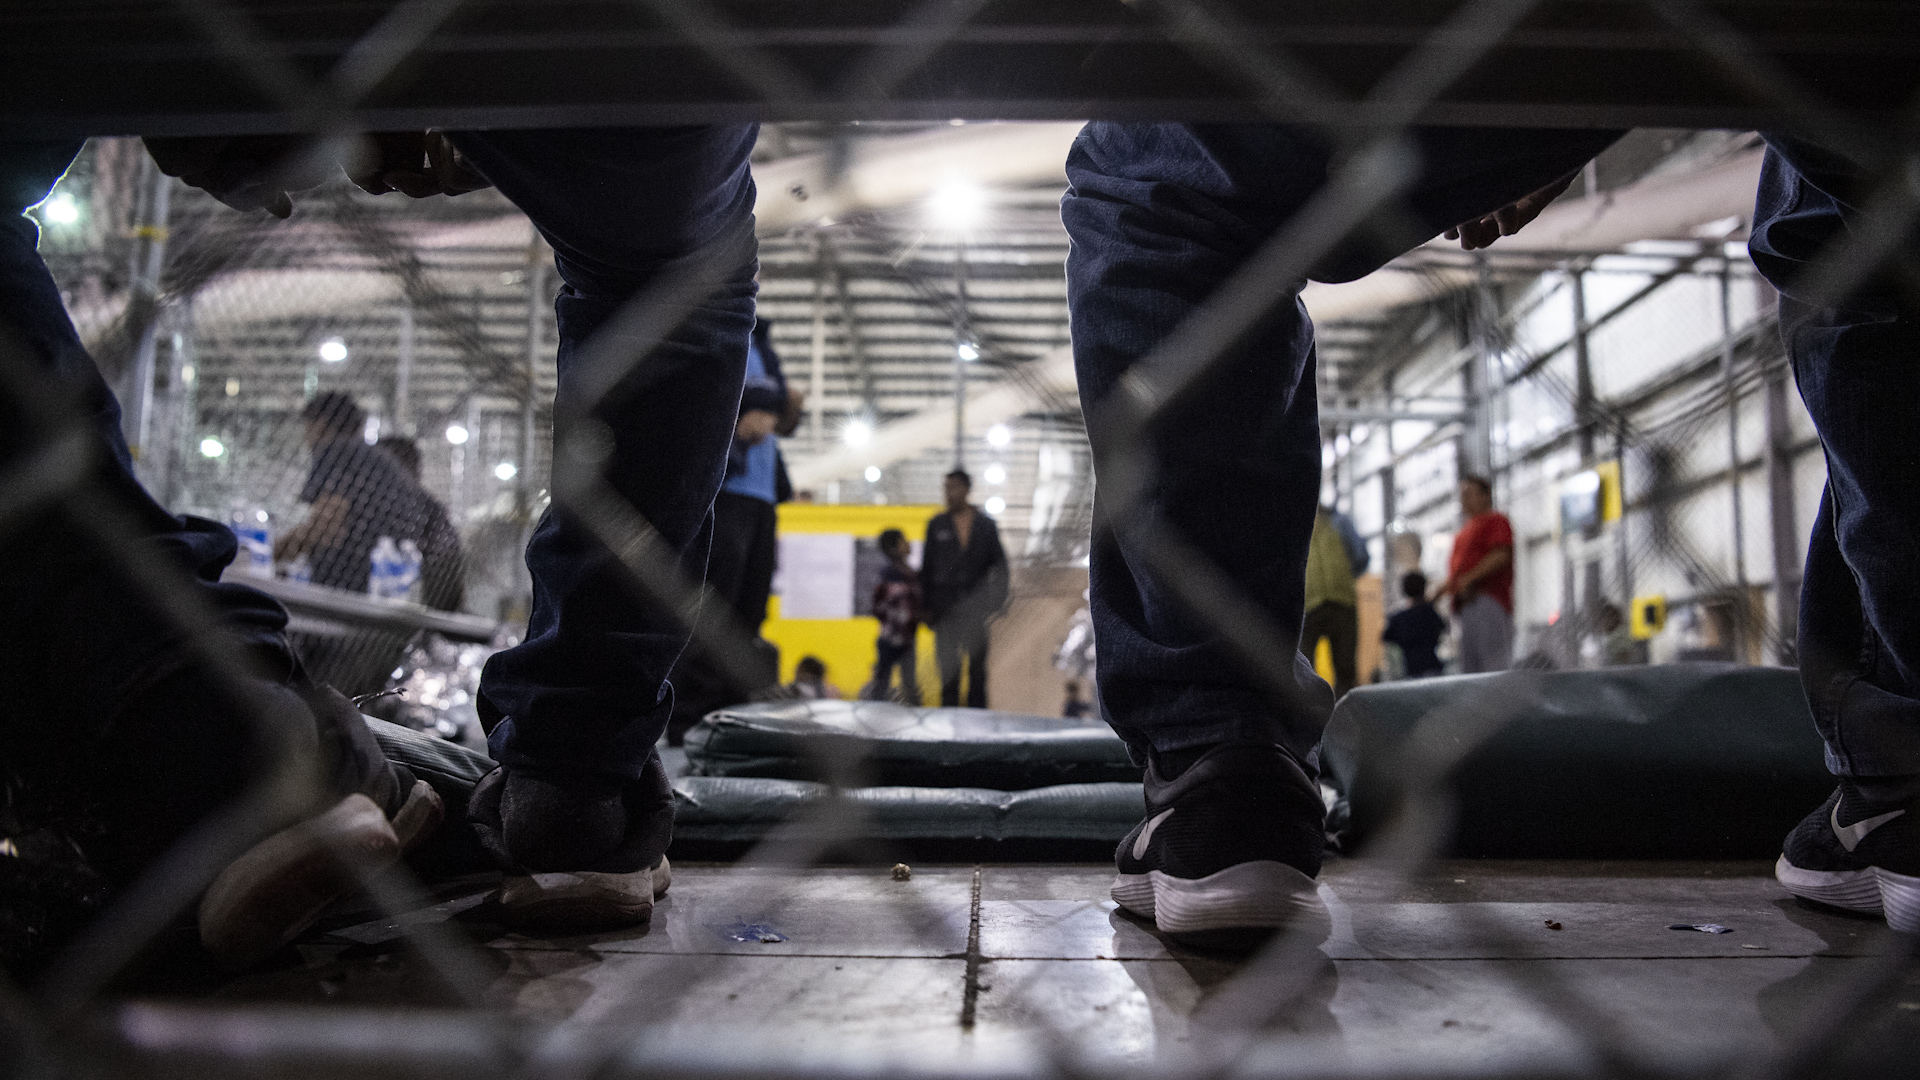 Trump administration moves to terminate court agreement, hold migrant children and parents longer